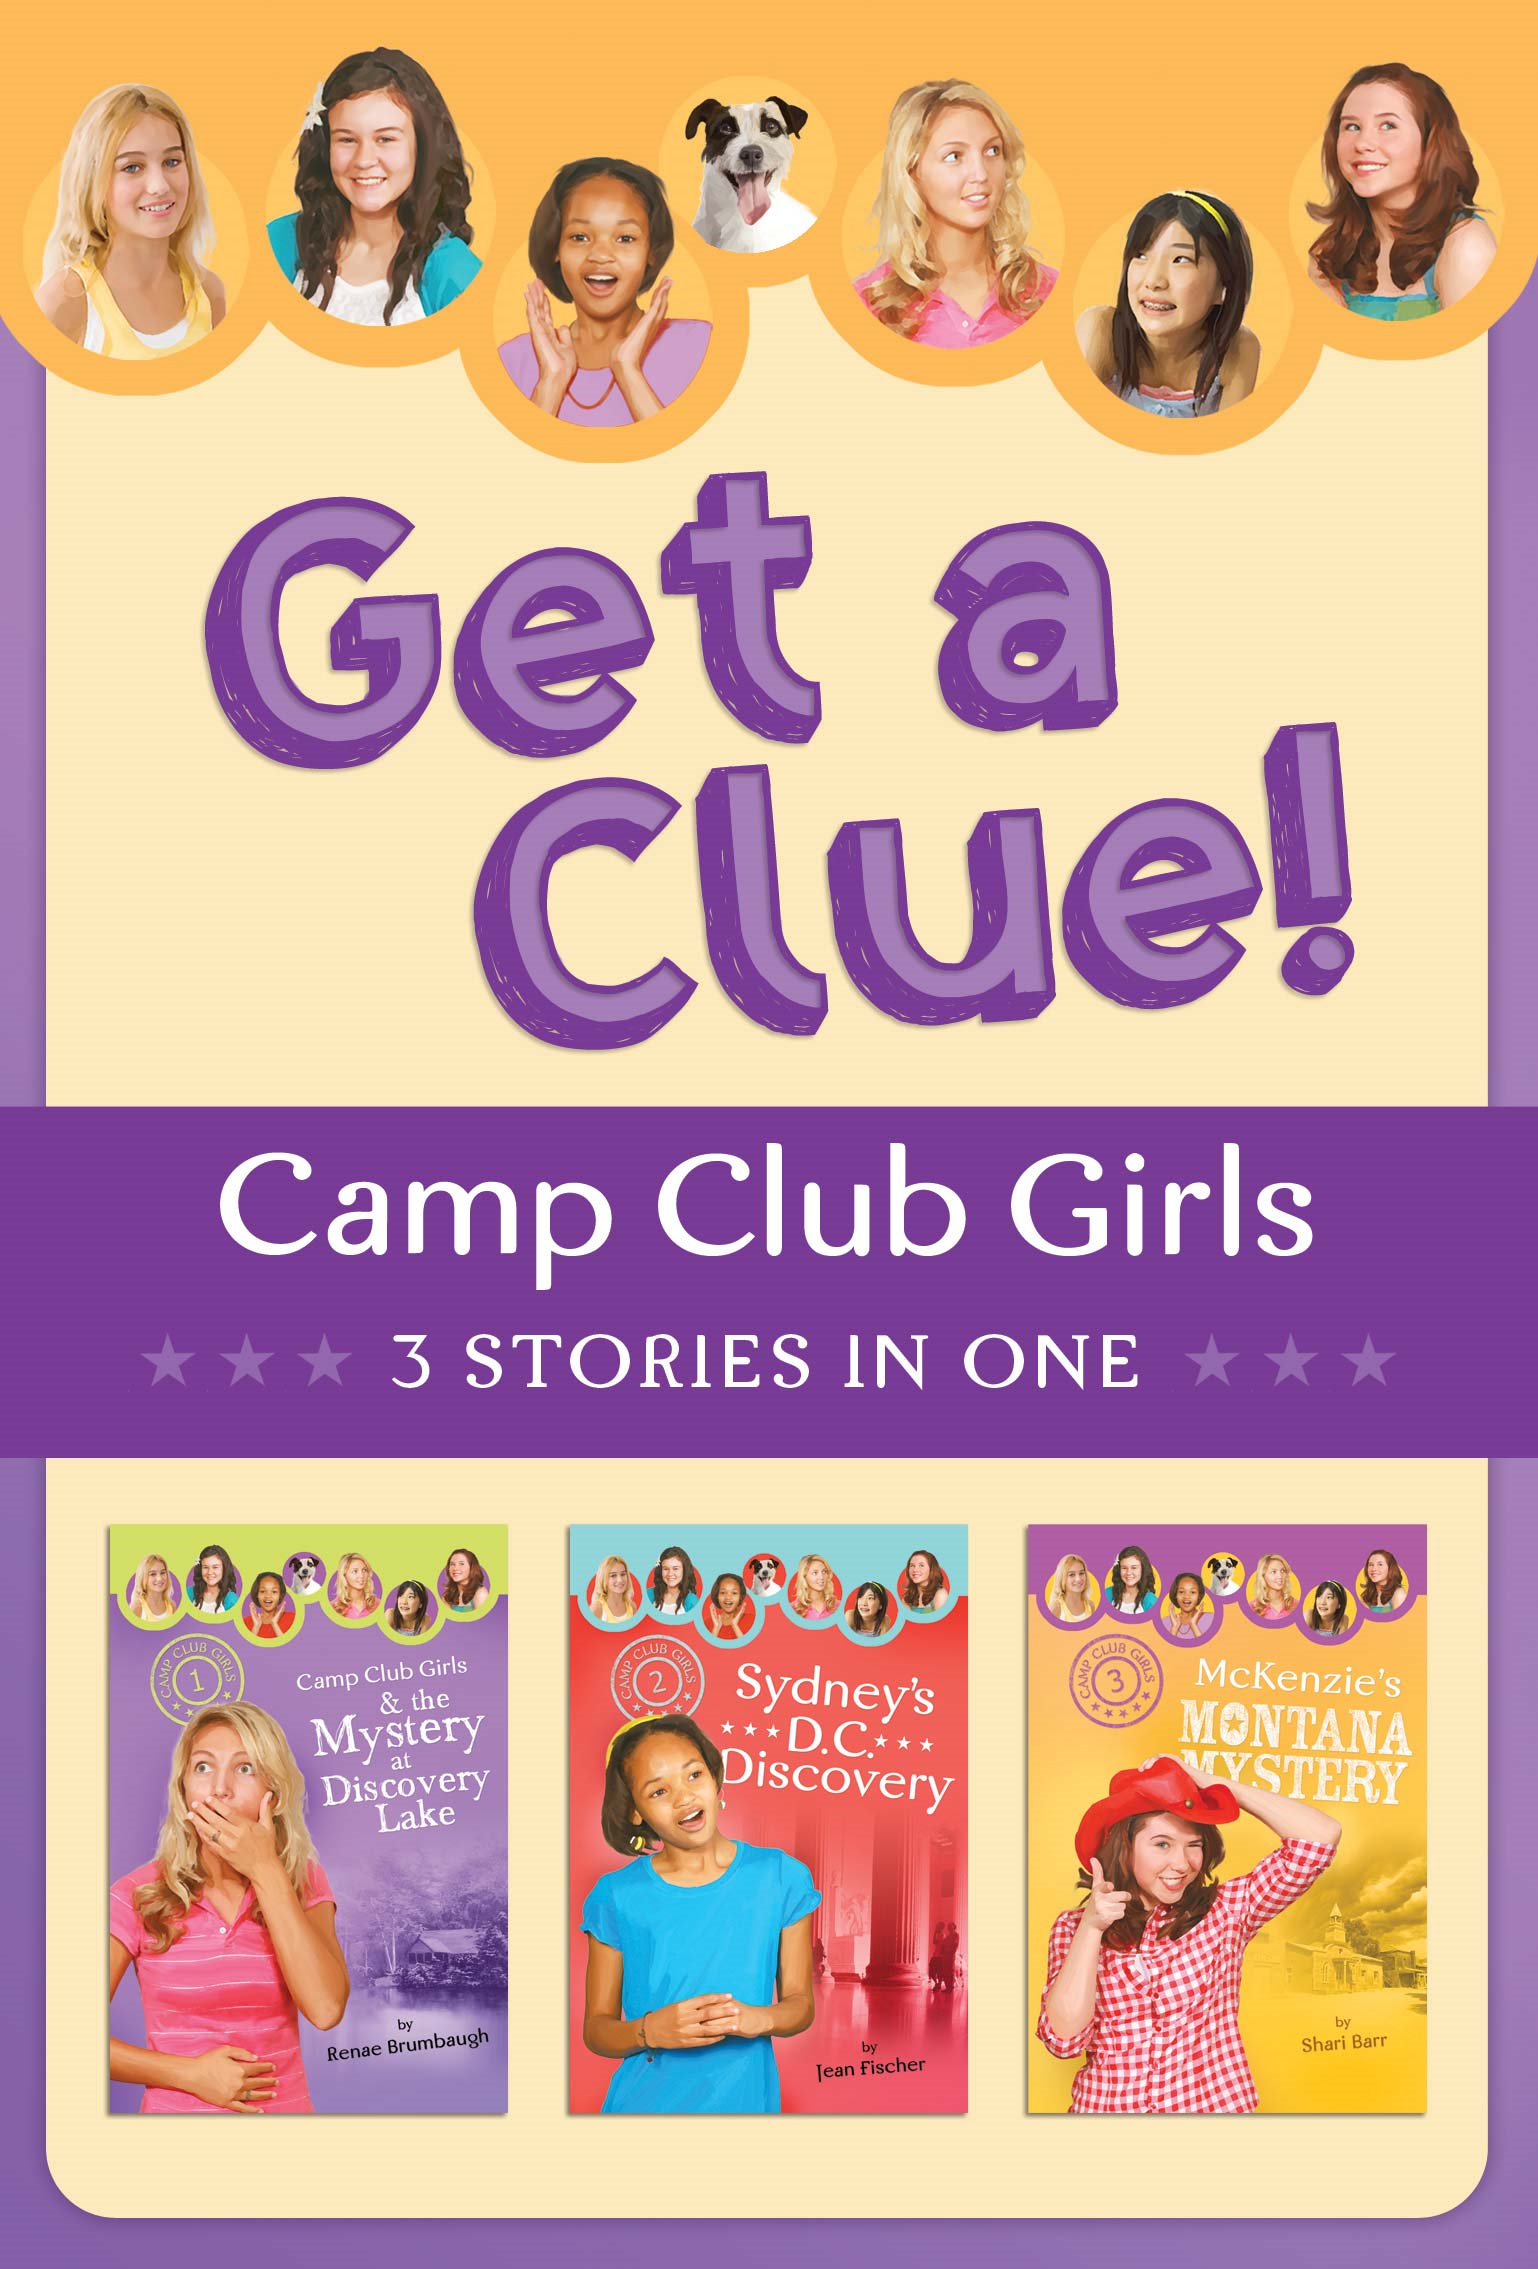 The Camp Club Girls Get a Clue!: 3 Stories in 1